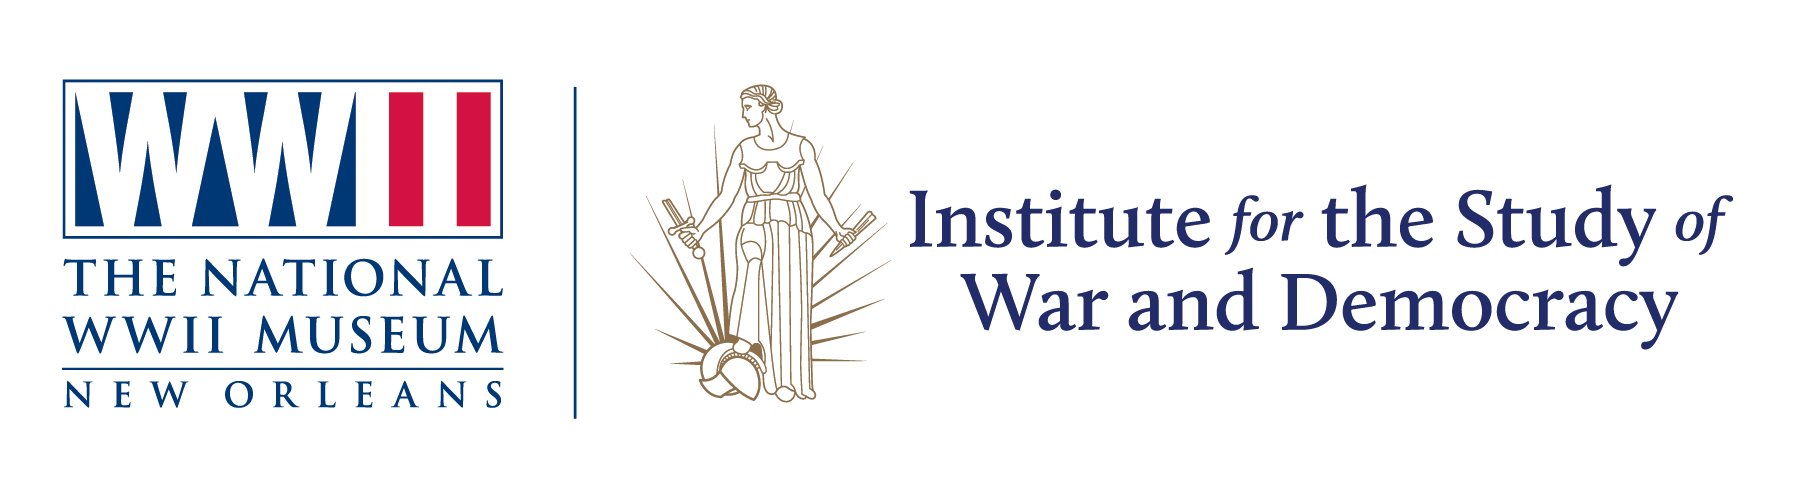 Institute for the Study of War and Democracy